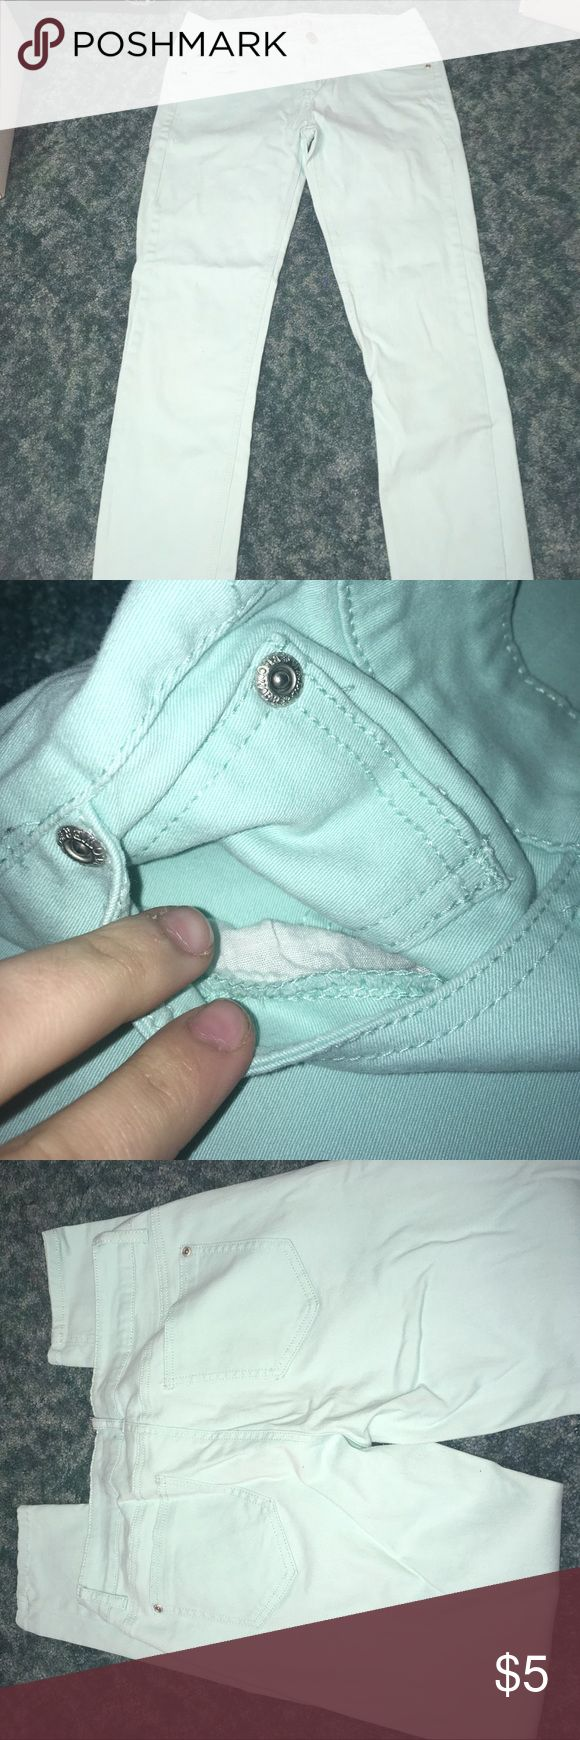 Light Teal Skinny Jeans This is a light teal pair of skinny jeans from Wallflower. Size: 11 fits like regular ones but Juniors was the only option. Have been worn a handful of times and have no snags. Still in amazing condition. Wallflower Jeans Skinny